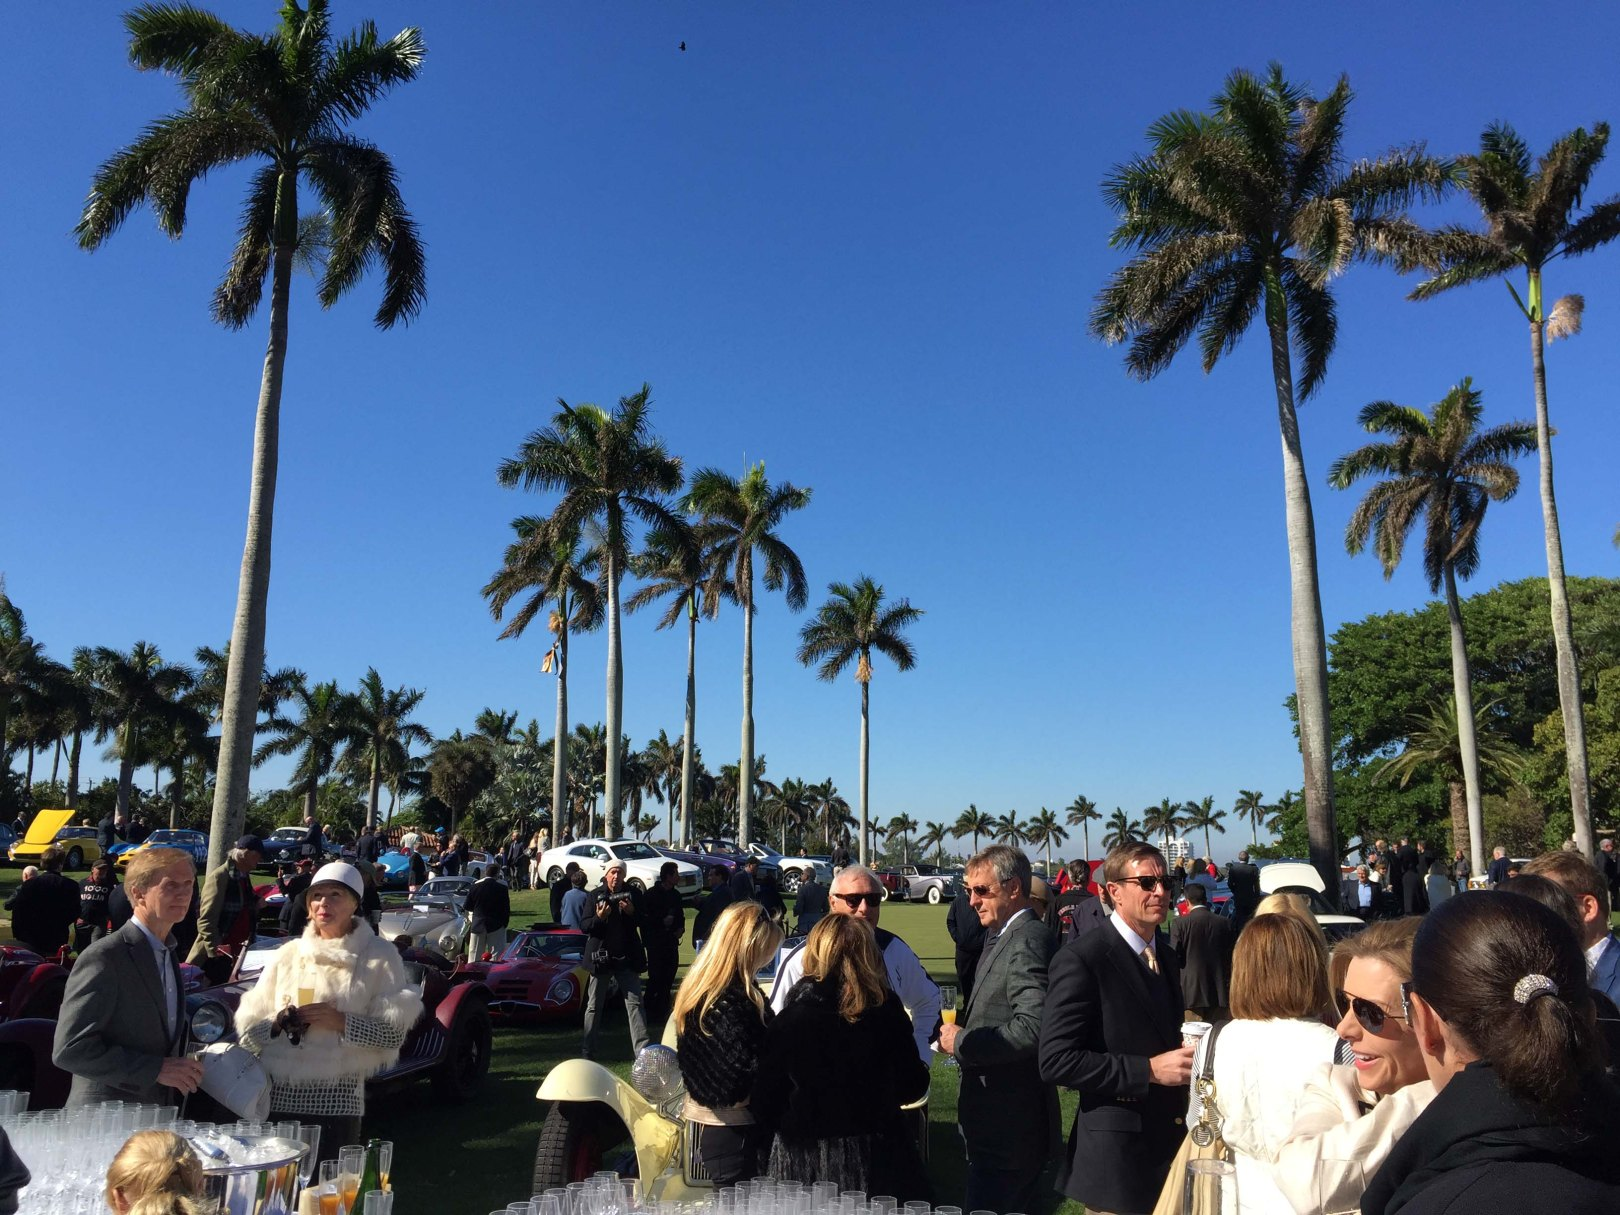 Collectible car eventing at Mar-a-Lago. Photo by Bradley Price.